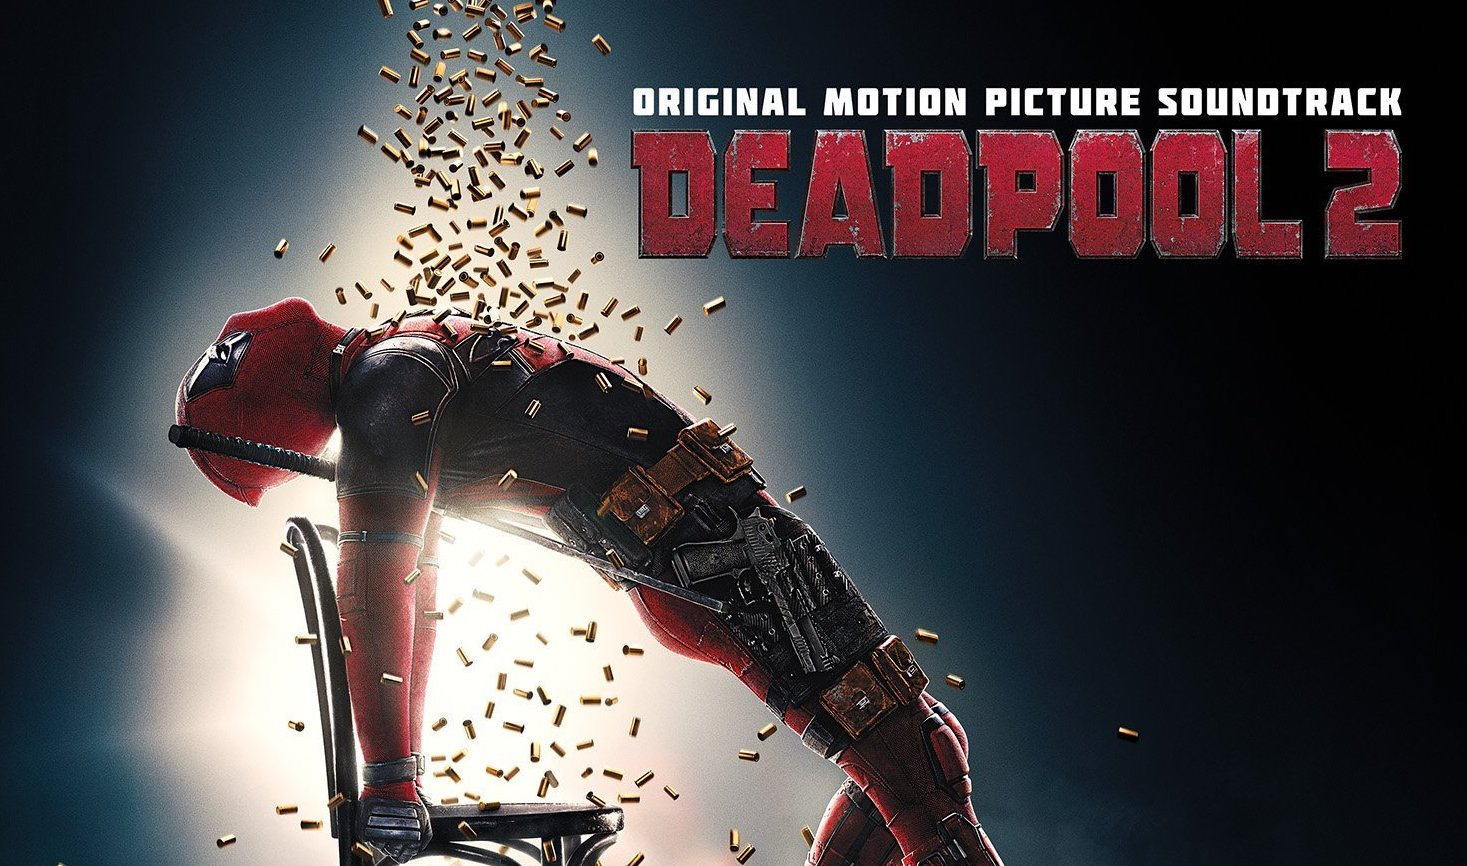 Deadpool-2-movie-soundtrack-2018-interview-Tyler-Bates